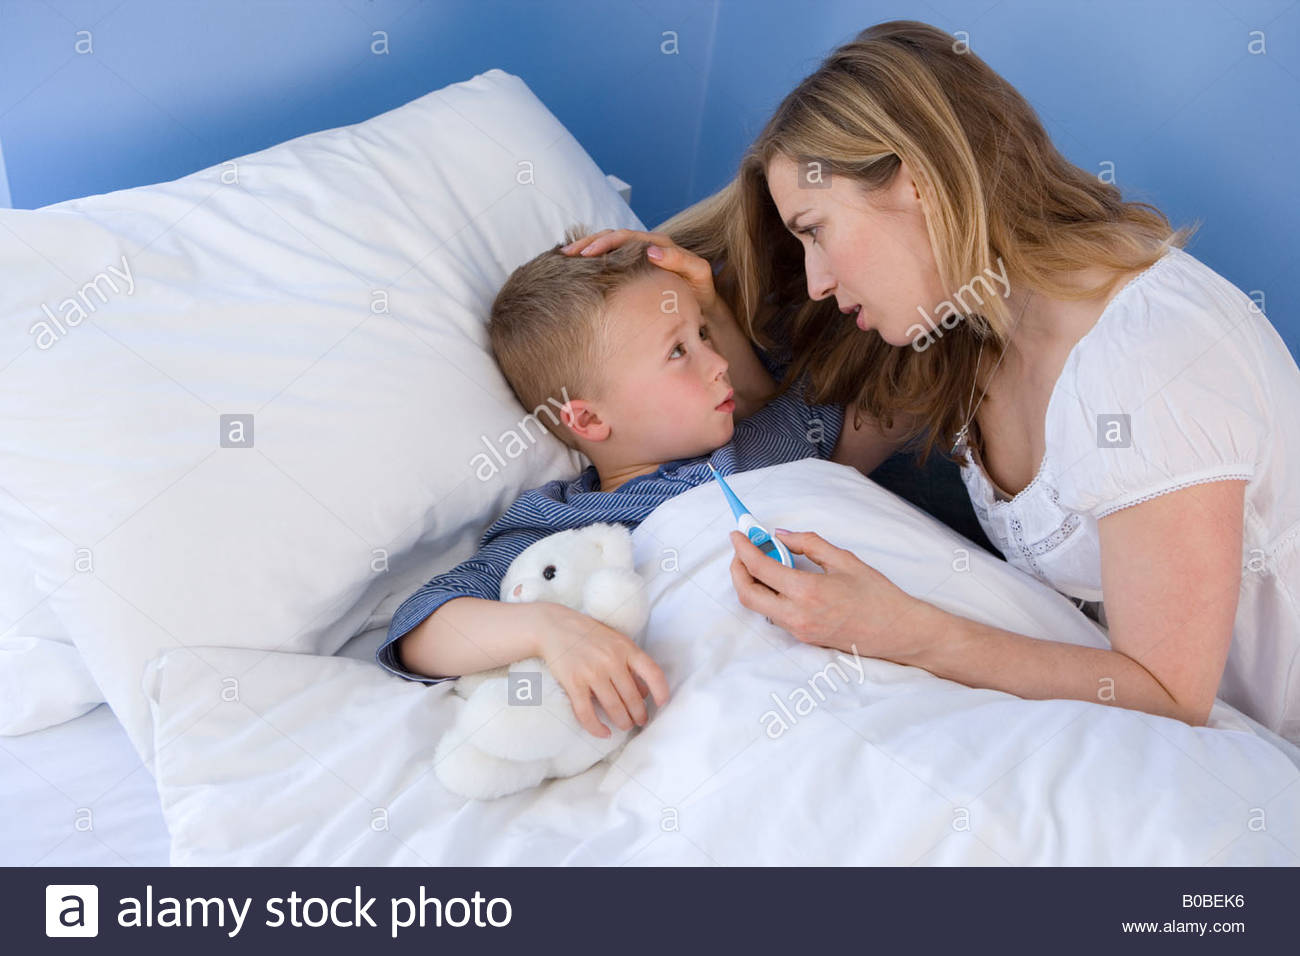 Boy  in bed, mother taking temperature, elevated view - Stock Image